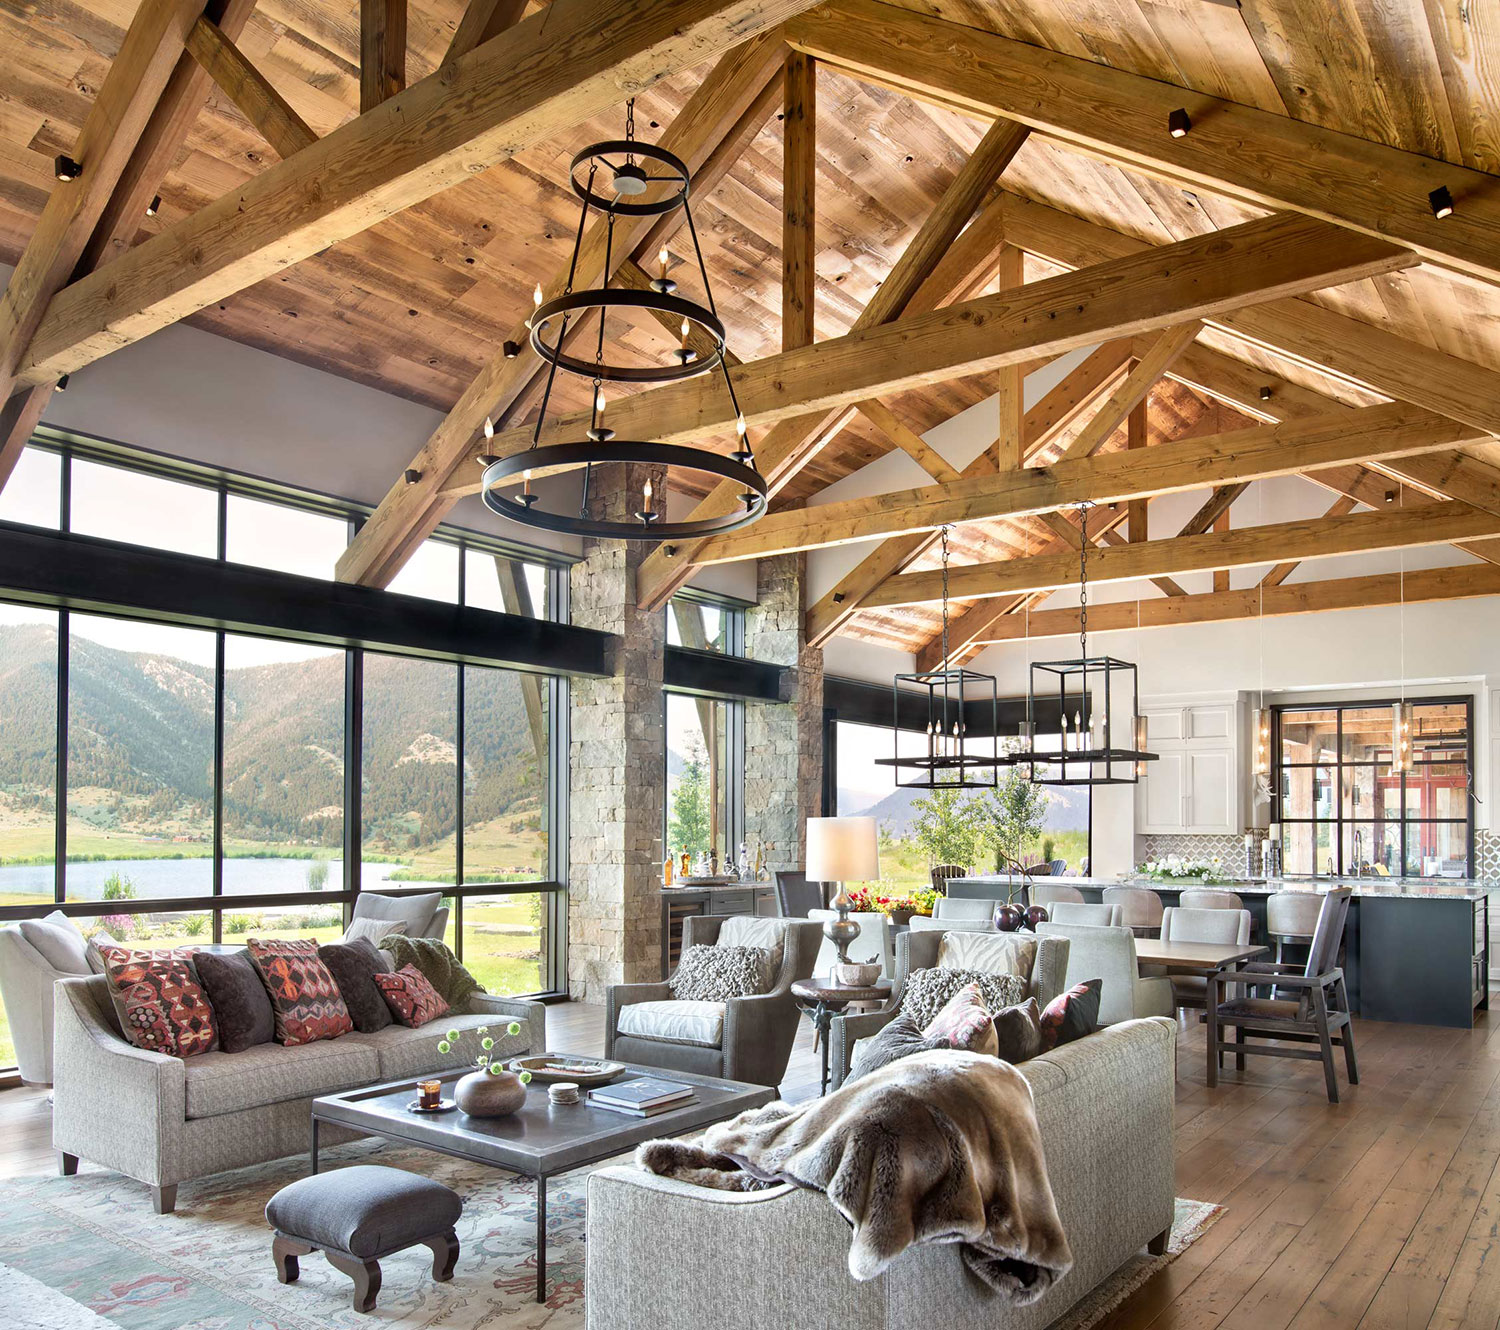 Contemporary Rustic Interiors | Locati Architects